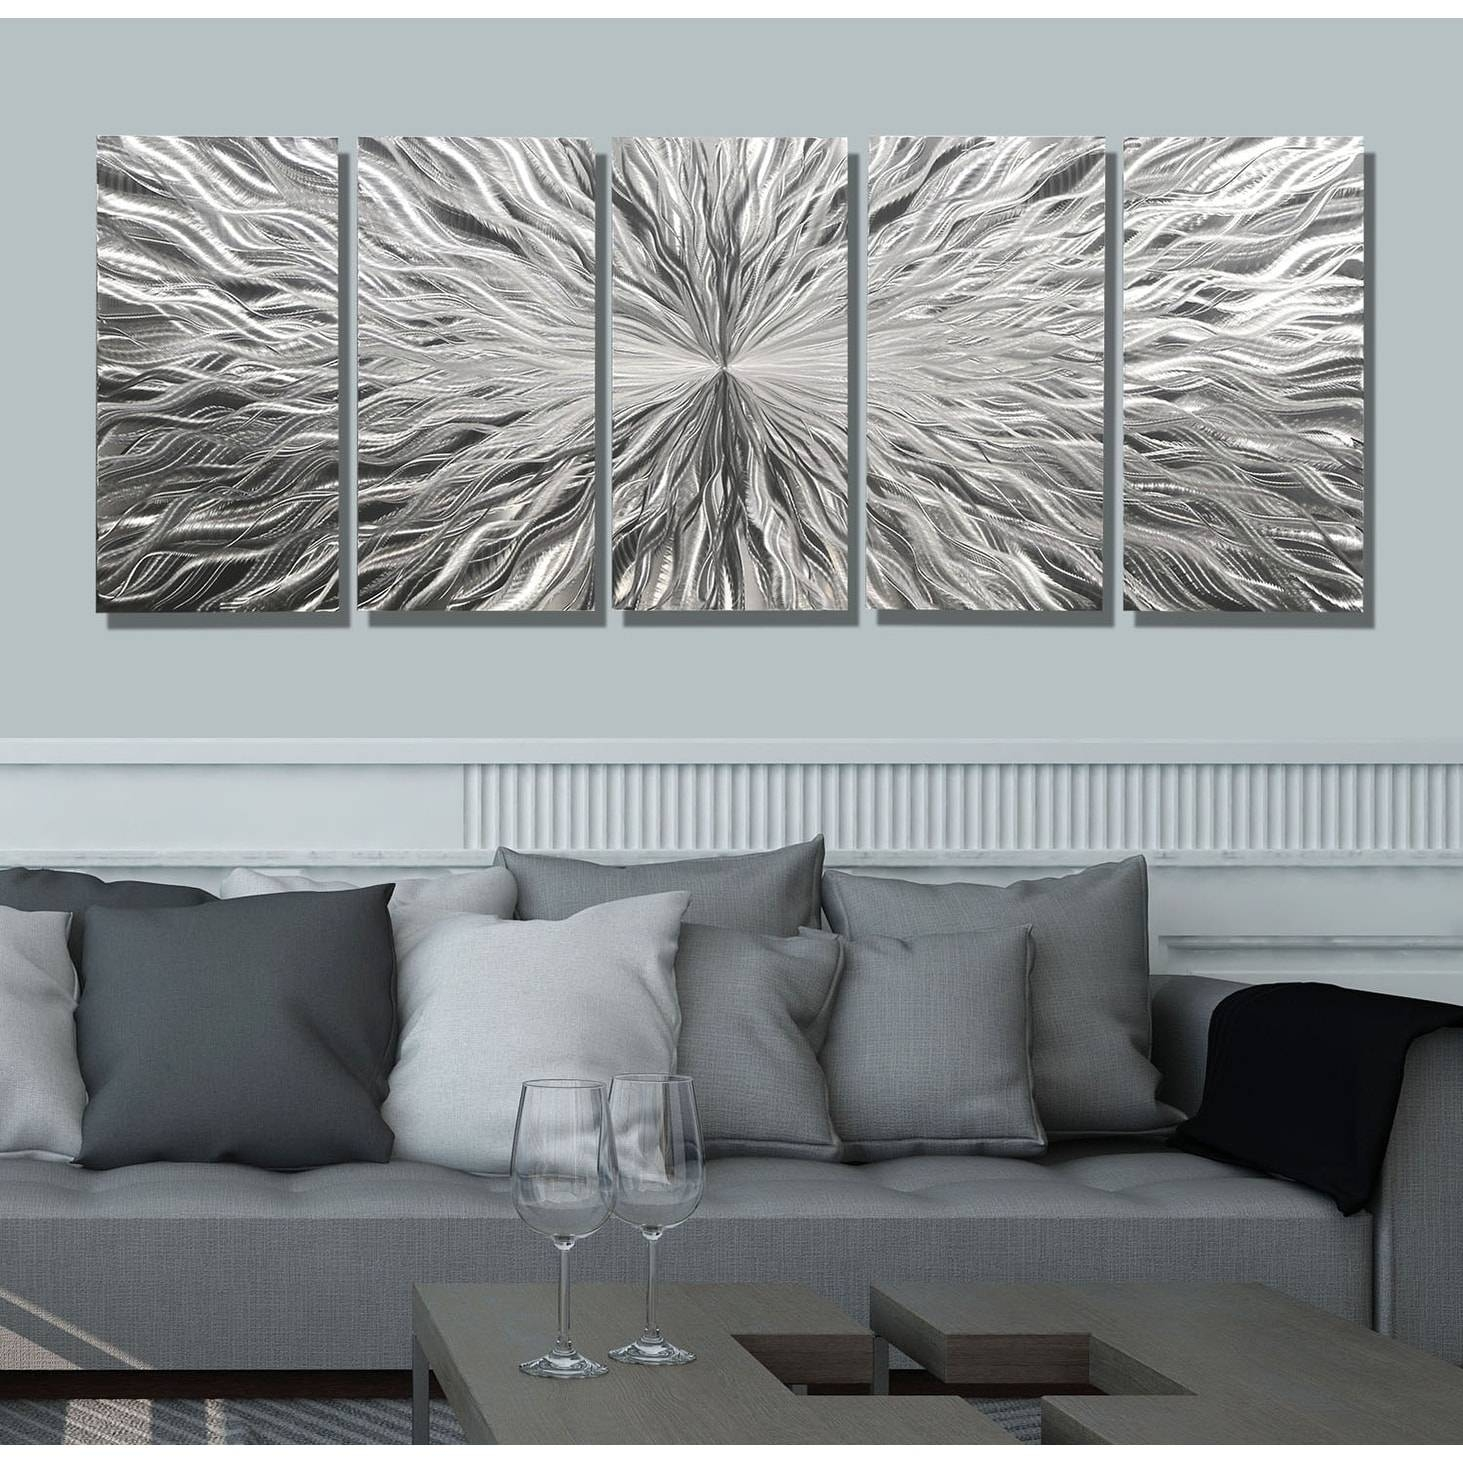 Statements2000 Silver 5 Panel Modern Metal Wall Art Sculpture With Regard To Latest Modern Metal Wall Art (View 17 of 20)